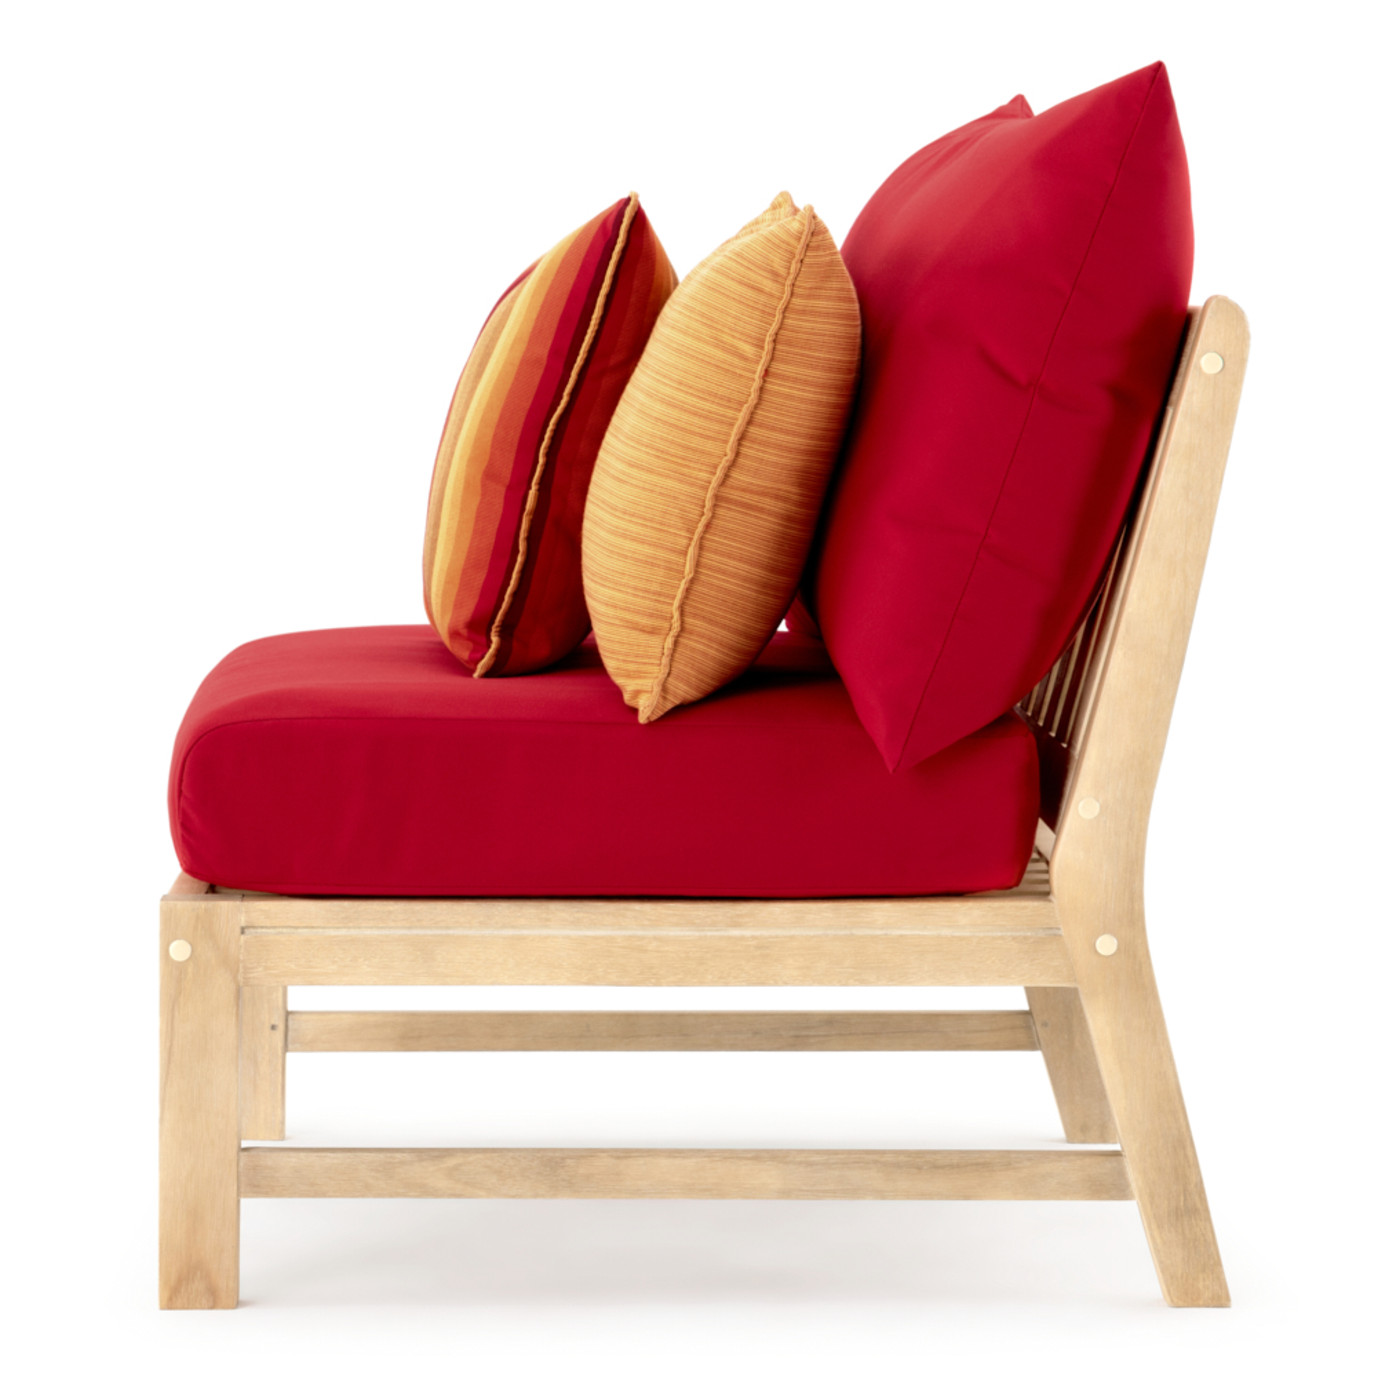 Kooper Armless Chairs - Sunset Red